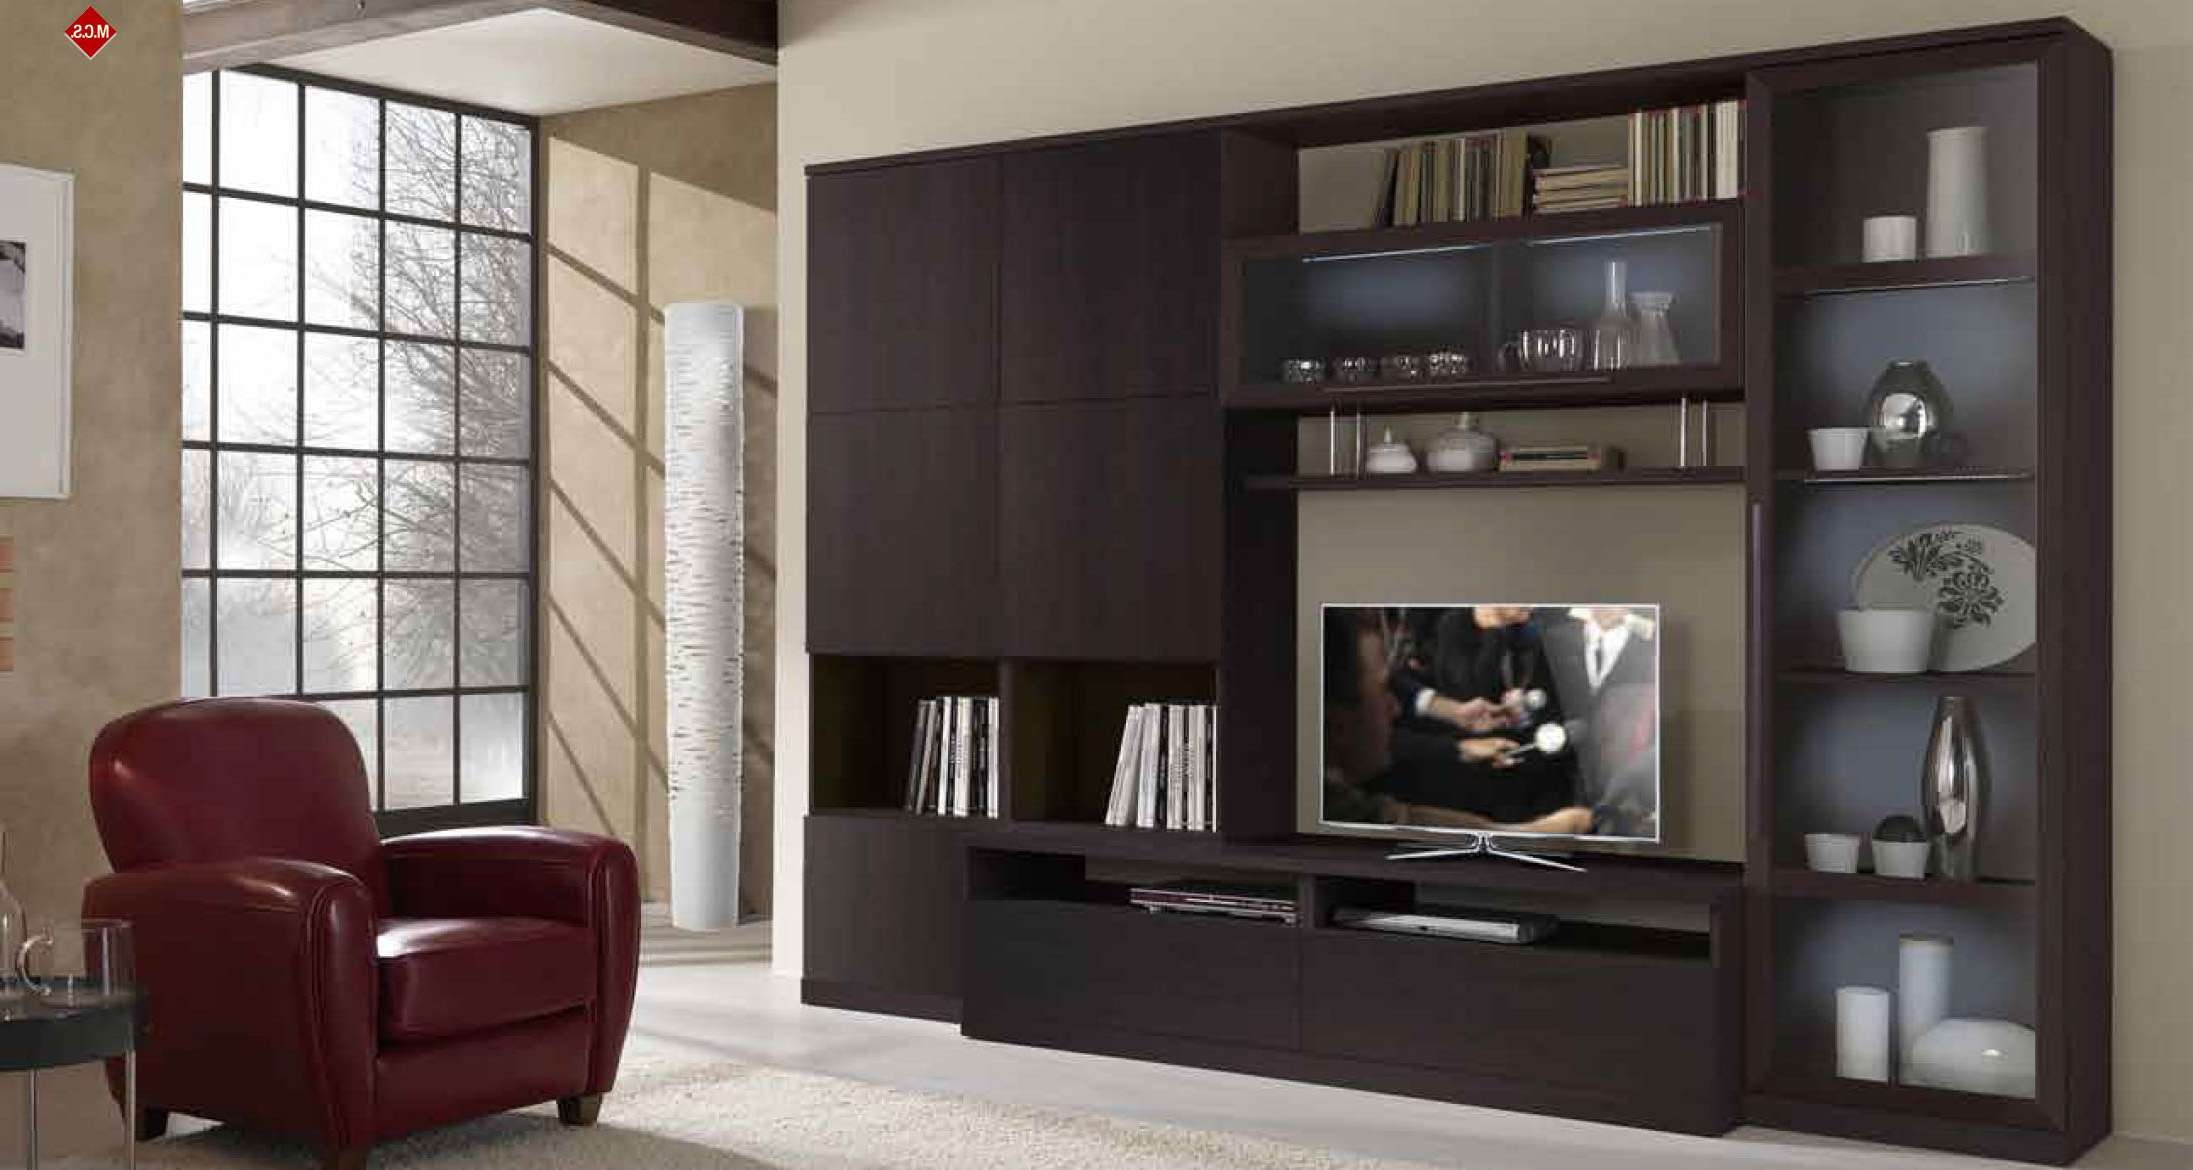 Wall Display Units & Tv Cabinets – Edgarpoe With Regard To Wall Display Units And Tv Cabinets (View 2 of 20)